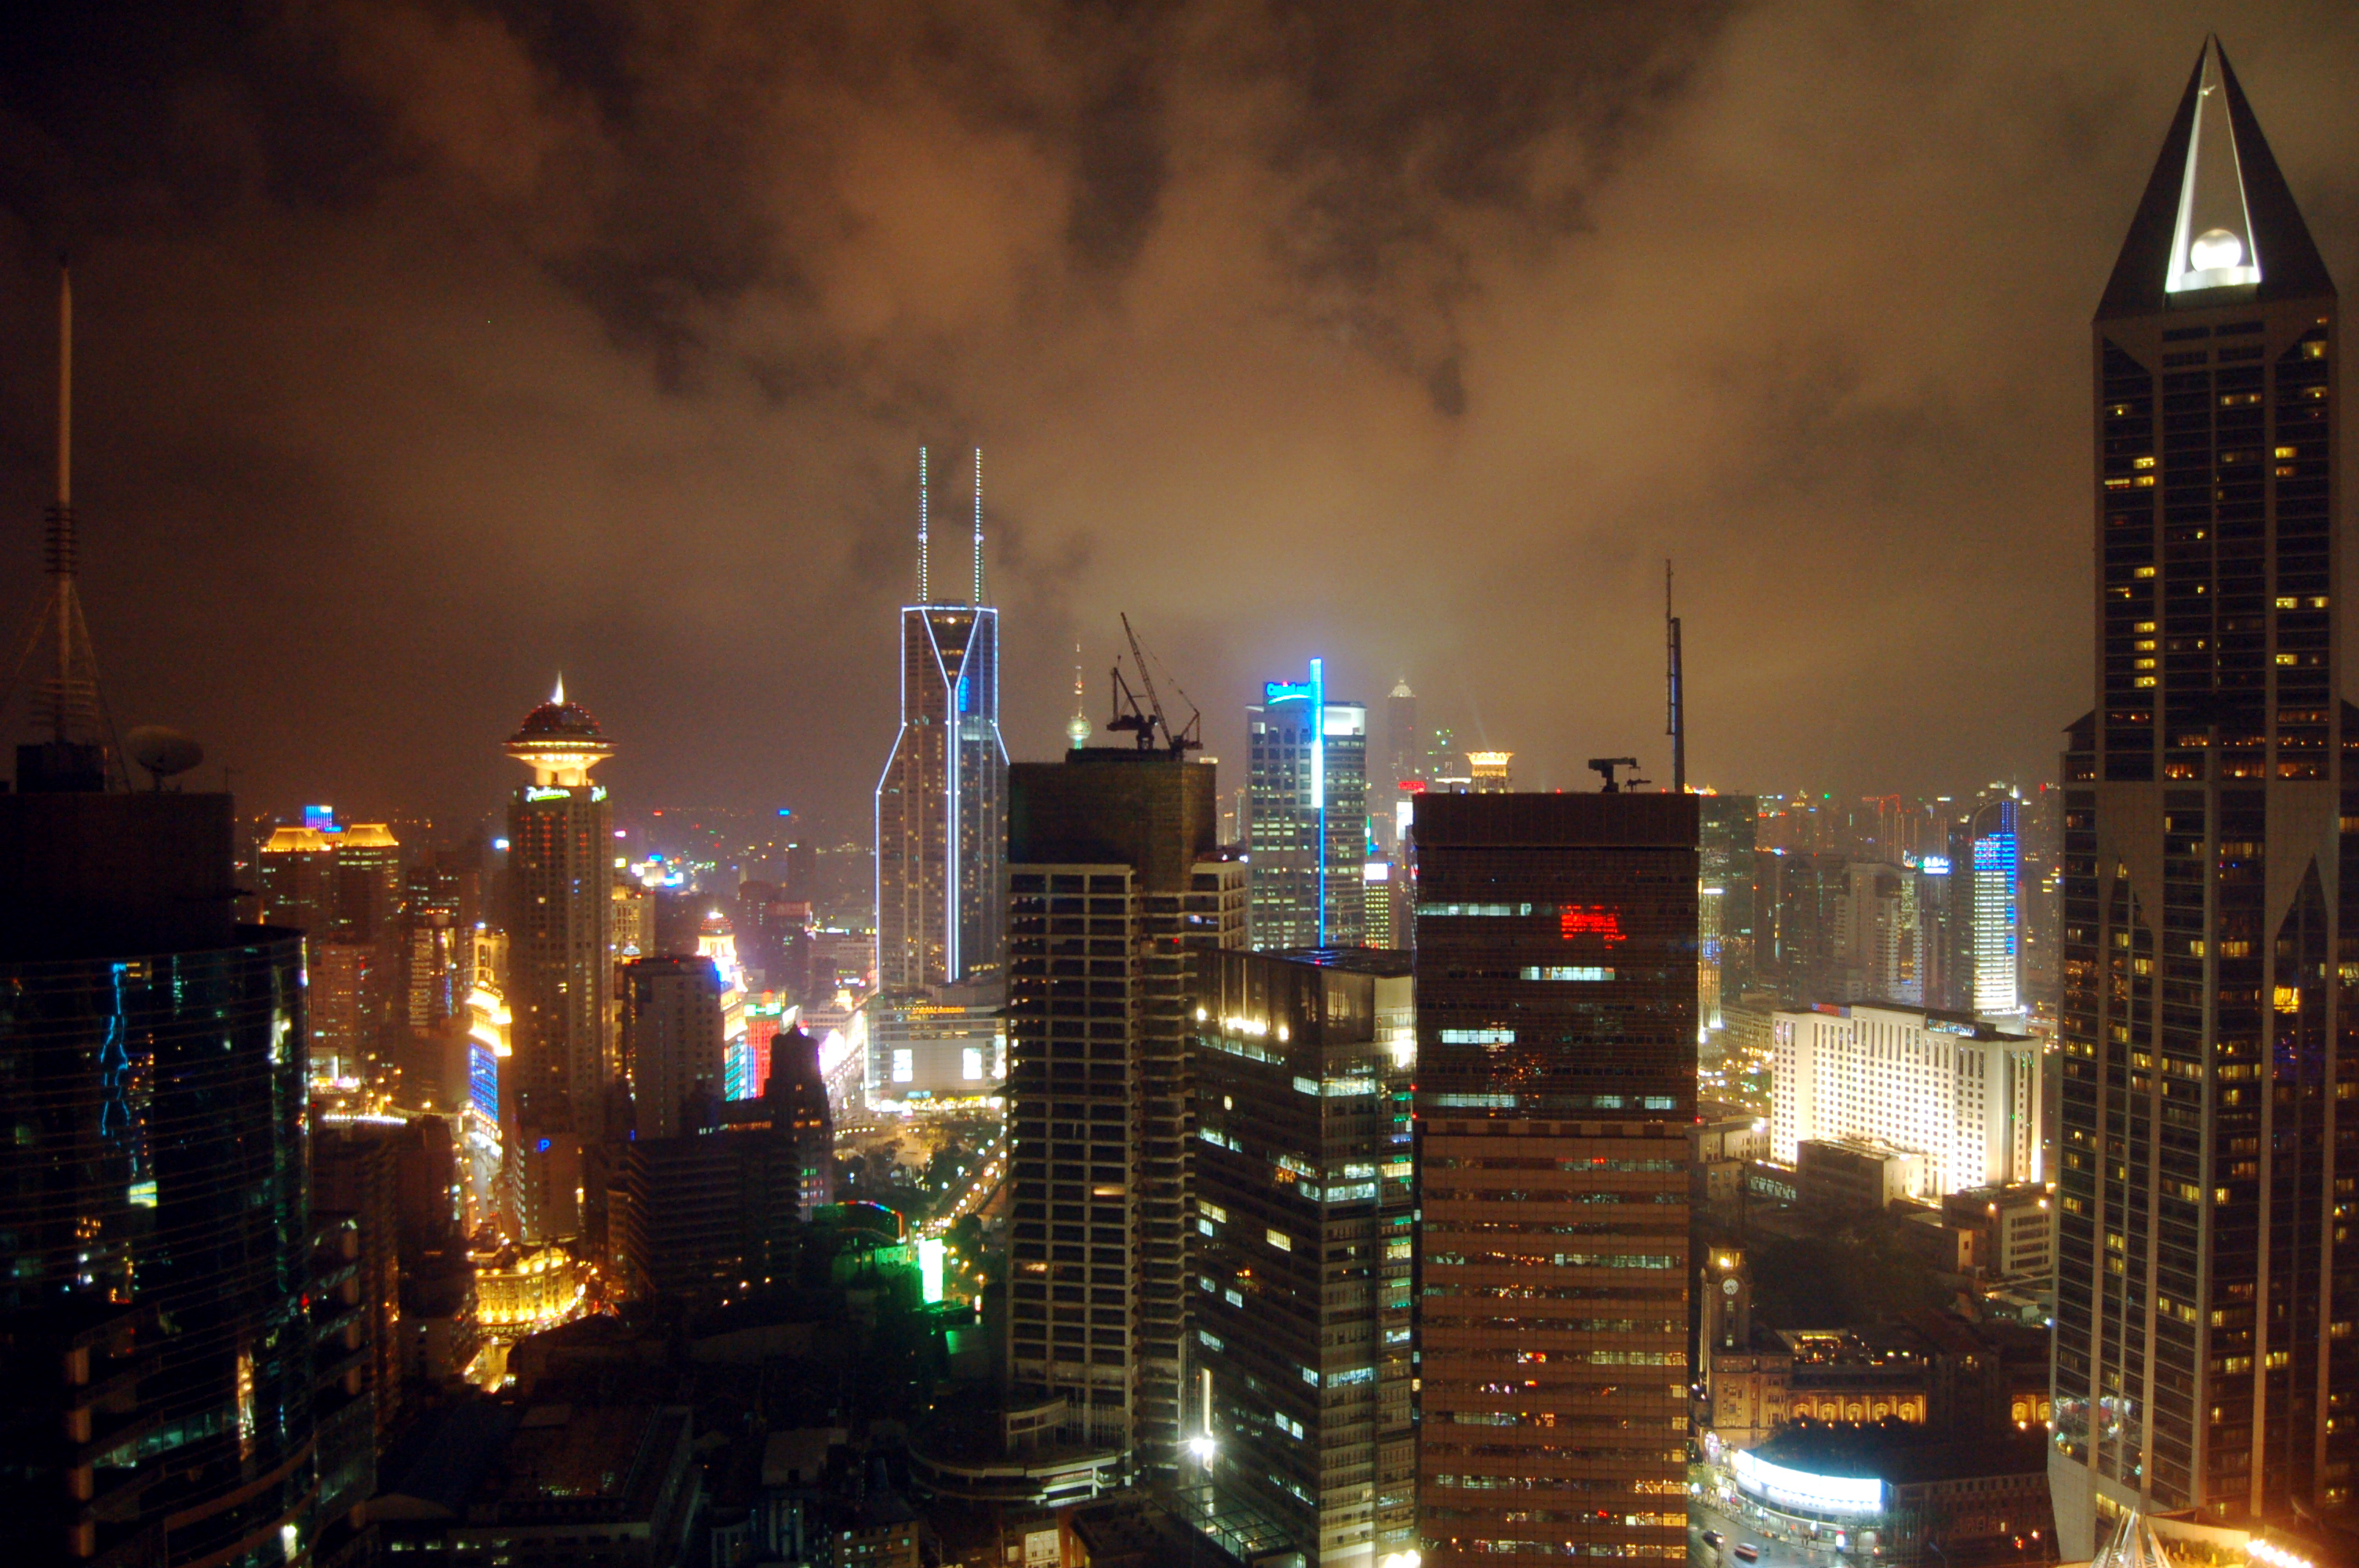 The West Bank Skyline of Shanghai